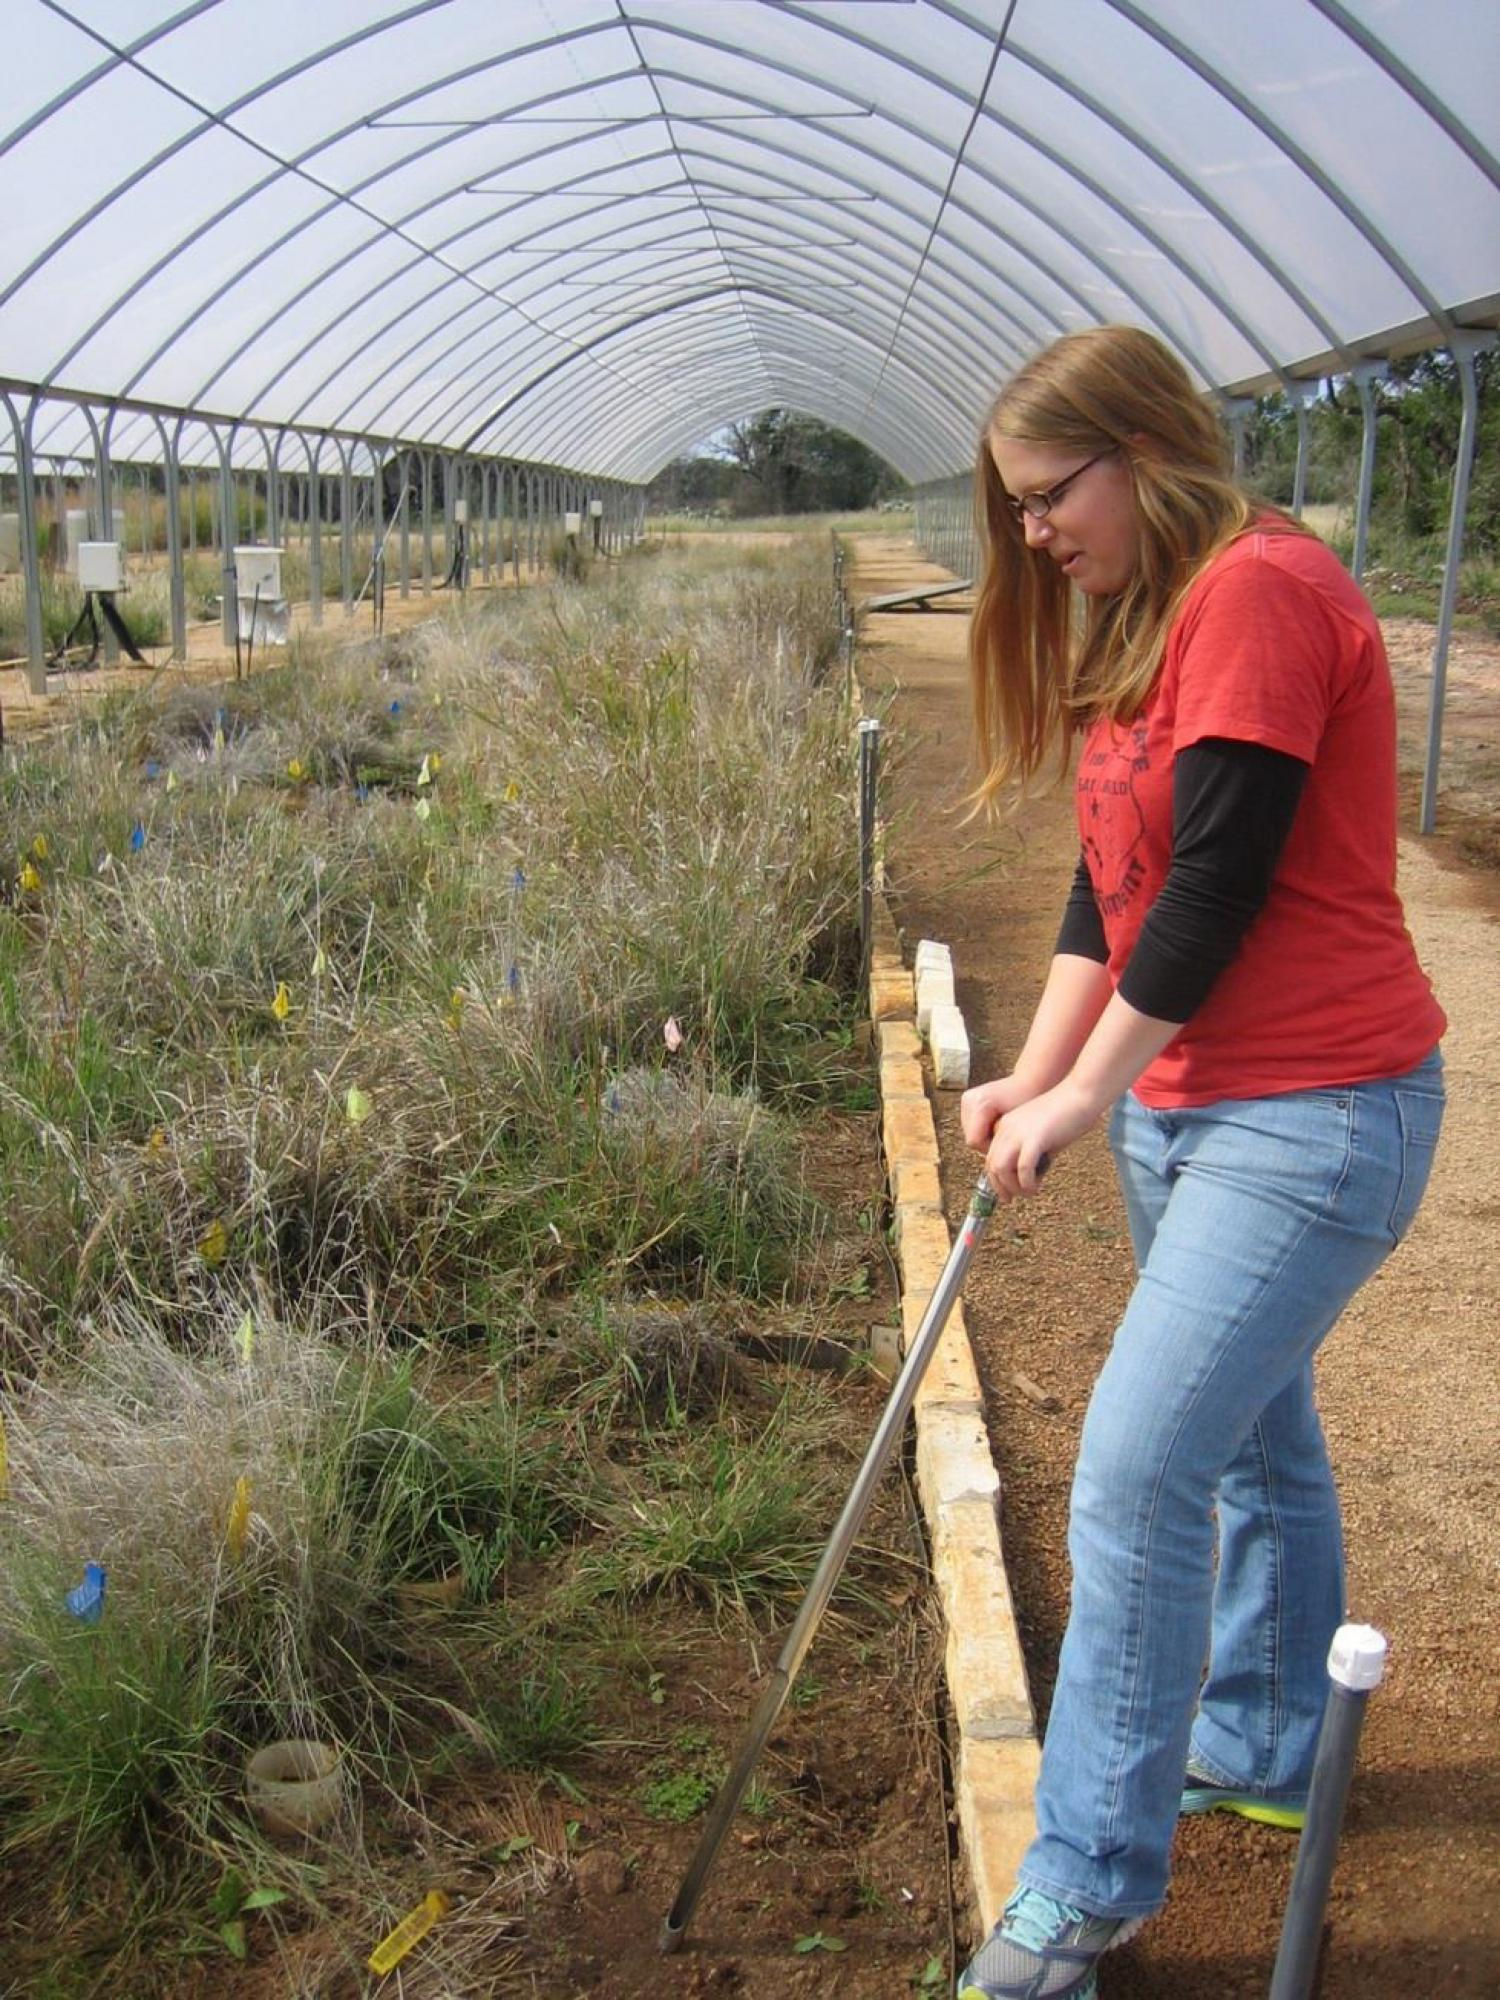 Historical rainfall levels are significant in carbon emissions from soil